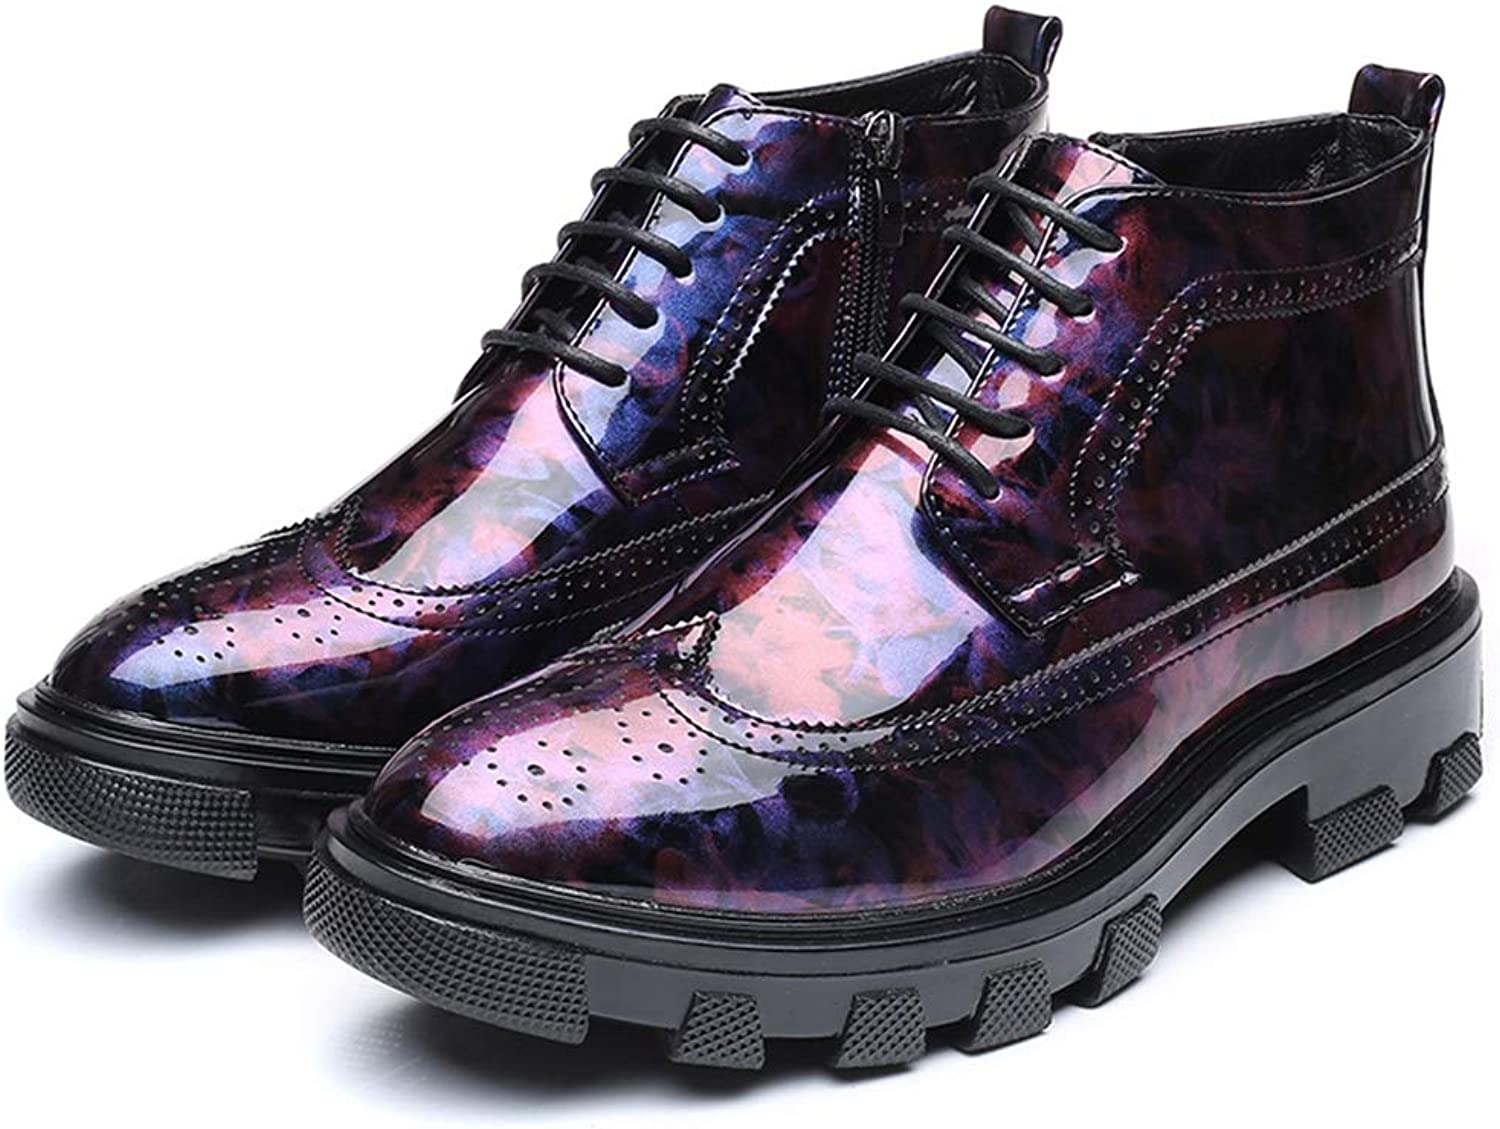 2019 Mens Boots Men's Casual Fashion Business and Ankle Boots Non-Slip Thick Patent Leather Brogue Formal shoes